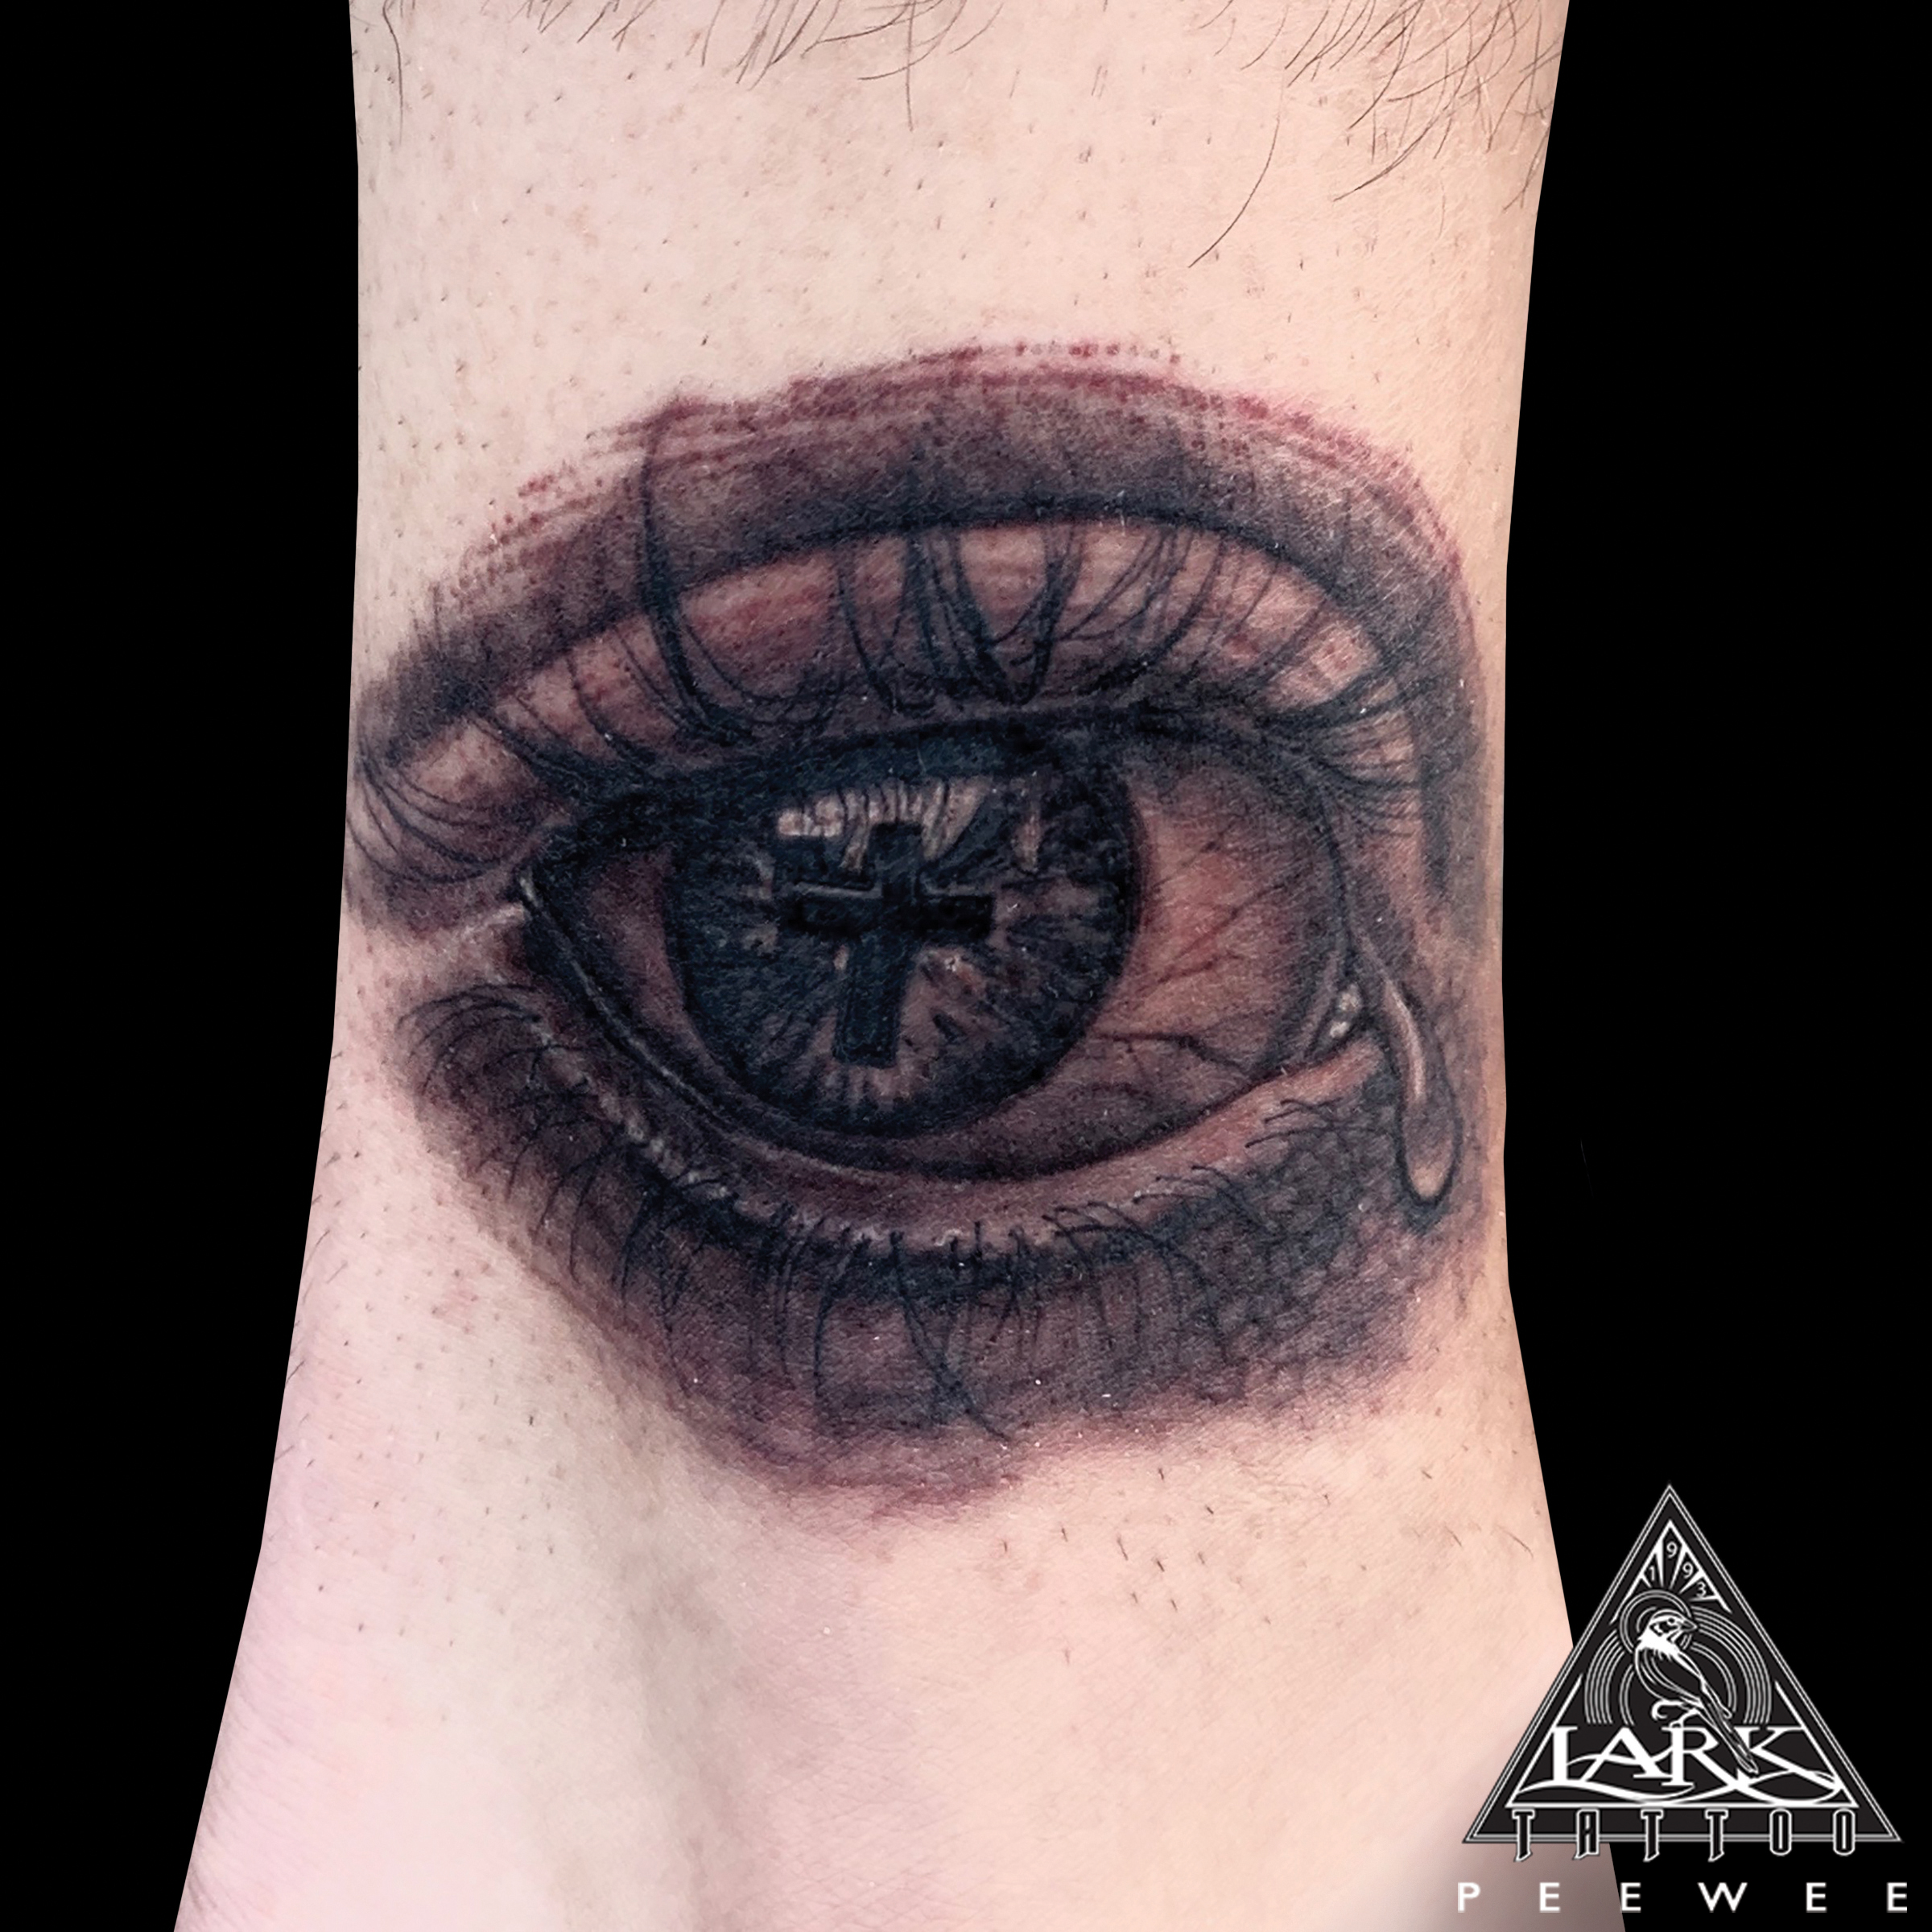 #LarkTattoo #Tattoo #Tattoos #BlackAndGrey #BlackAndGreyTattoo #BlackAndGray #BlackAndGrayTattoo #BNG #BNGTattoo #BNGInkSociety #Realism #RealismTattoo #Realistic #RealisticTattoo #Eye #EyeTattoo #RealiticEyeTattoo #Cross #CrossTattoo #Religious #ReligiousTattoo #TattooArtist #Tattoist #Tattooer #LongIslandTattooArtist #LongIslandTattooer #LongIslandTattoo #TattooOfTheDay #Tat #Tats #Tatts #Tatted #Inked #Ink #TattooInk #AmazingInk #AmazingTattoo #BodyArt #LarkTattooWestbury #Westbury #LongIsland #NY #NewYork #USA #Art #Tattedup #InkedUp #LarkTattoos